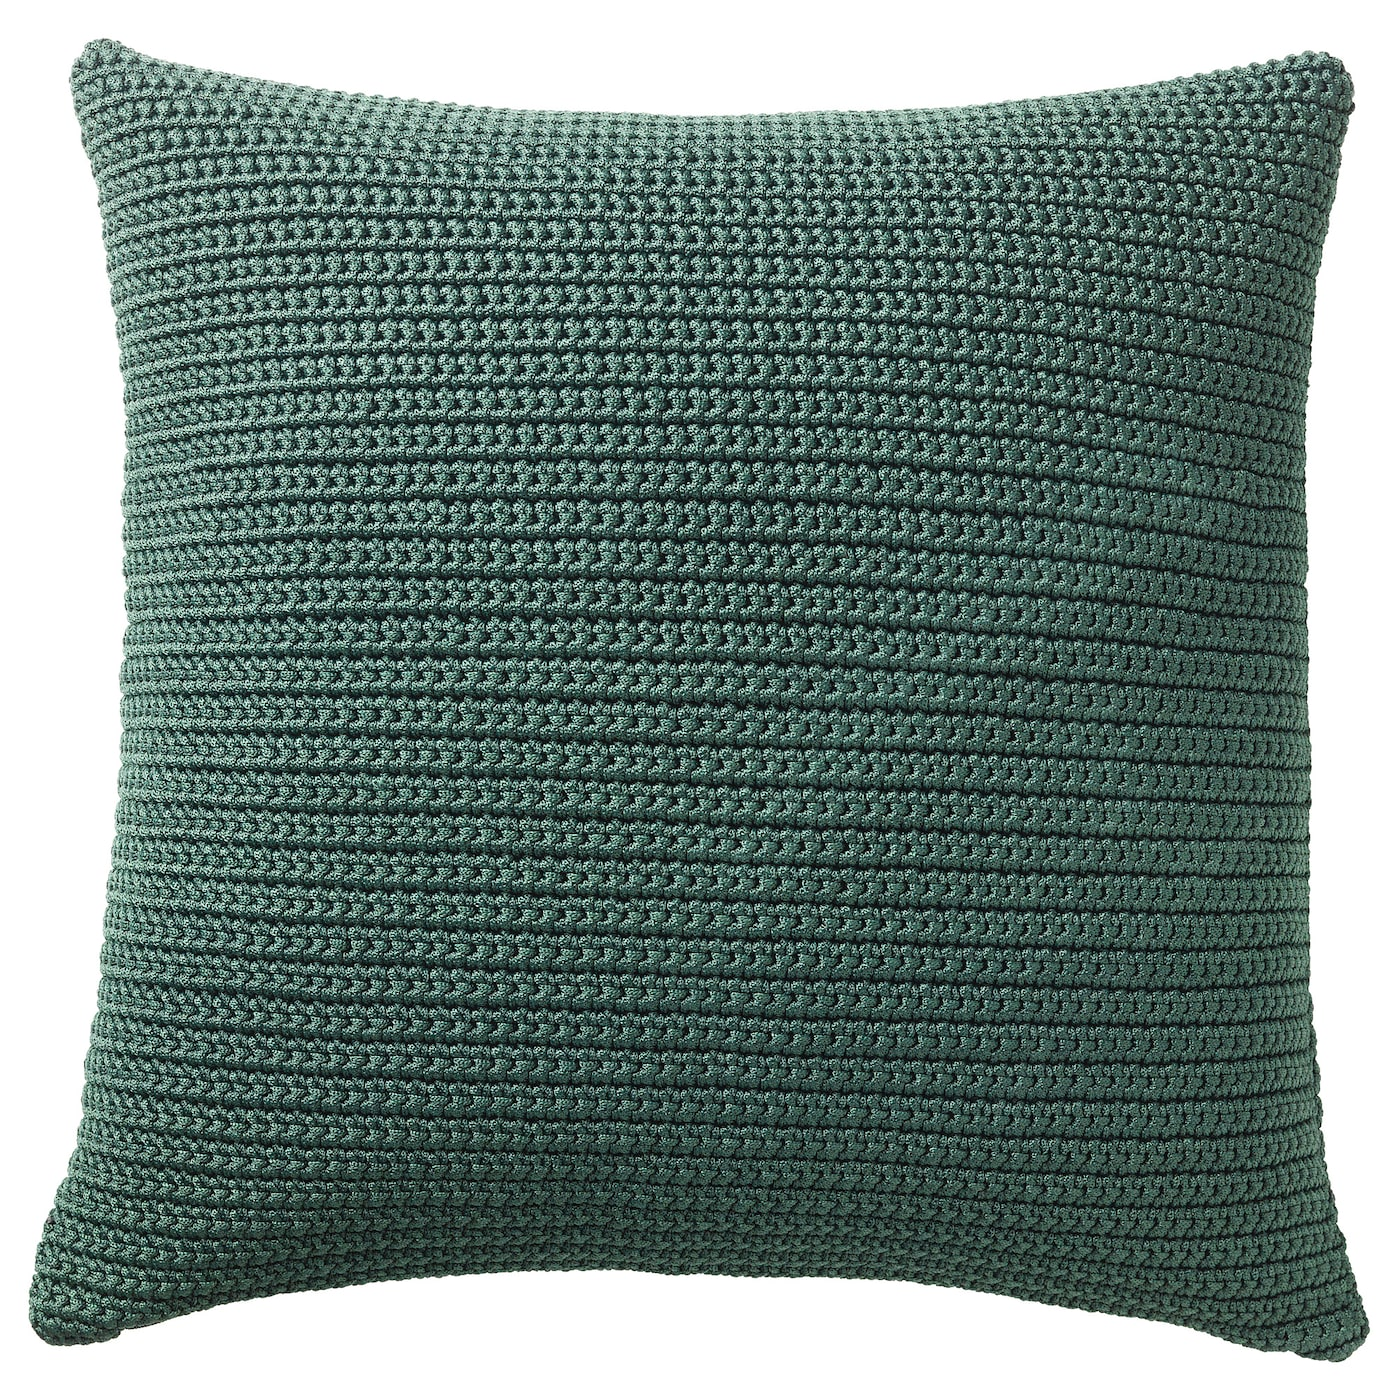 IKEA SÖTHOLMEN cushion cover Handmade by skilled craftspeople, which makes every cover unique.